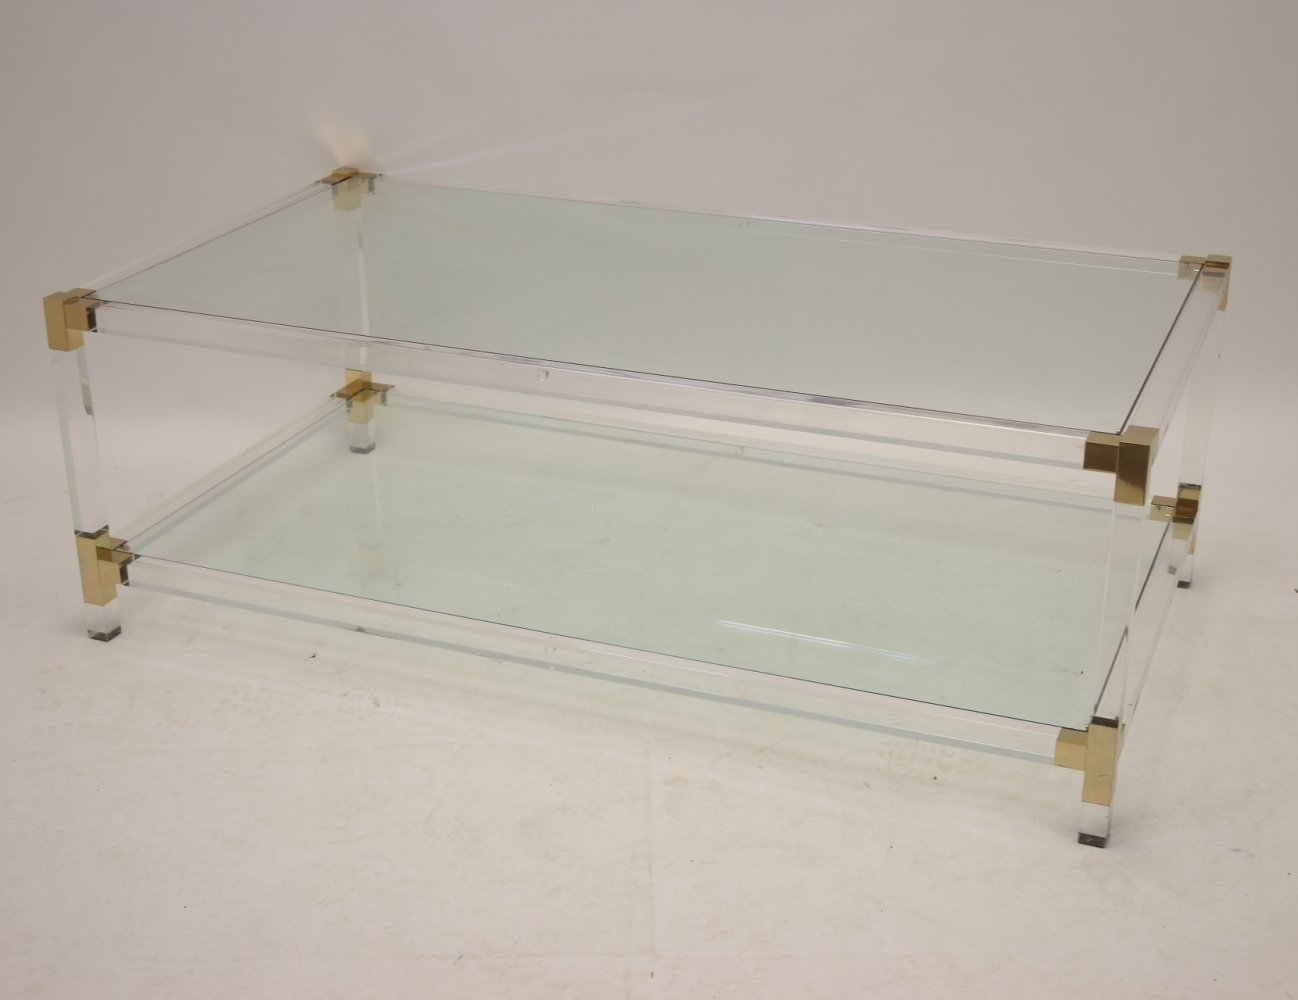 Charles Hollis Jones Plexiglass Coffee table with golden corners, 1970s